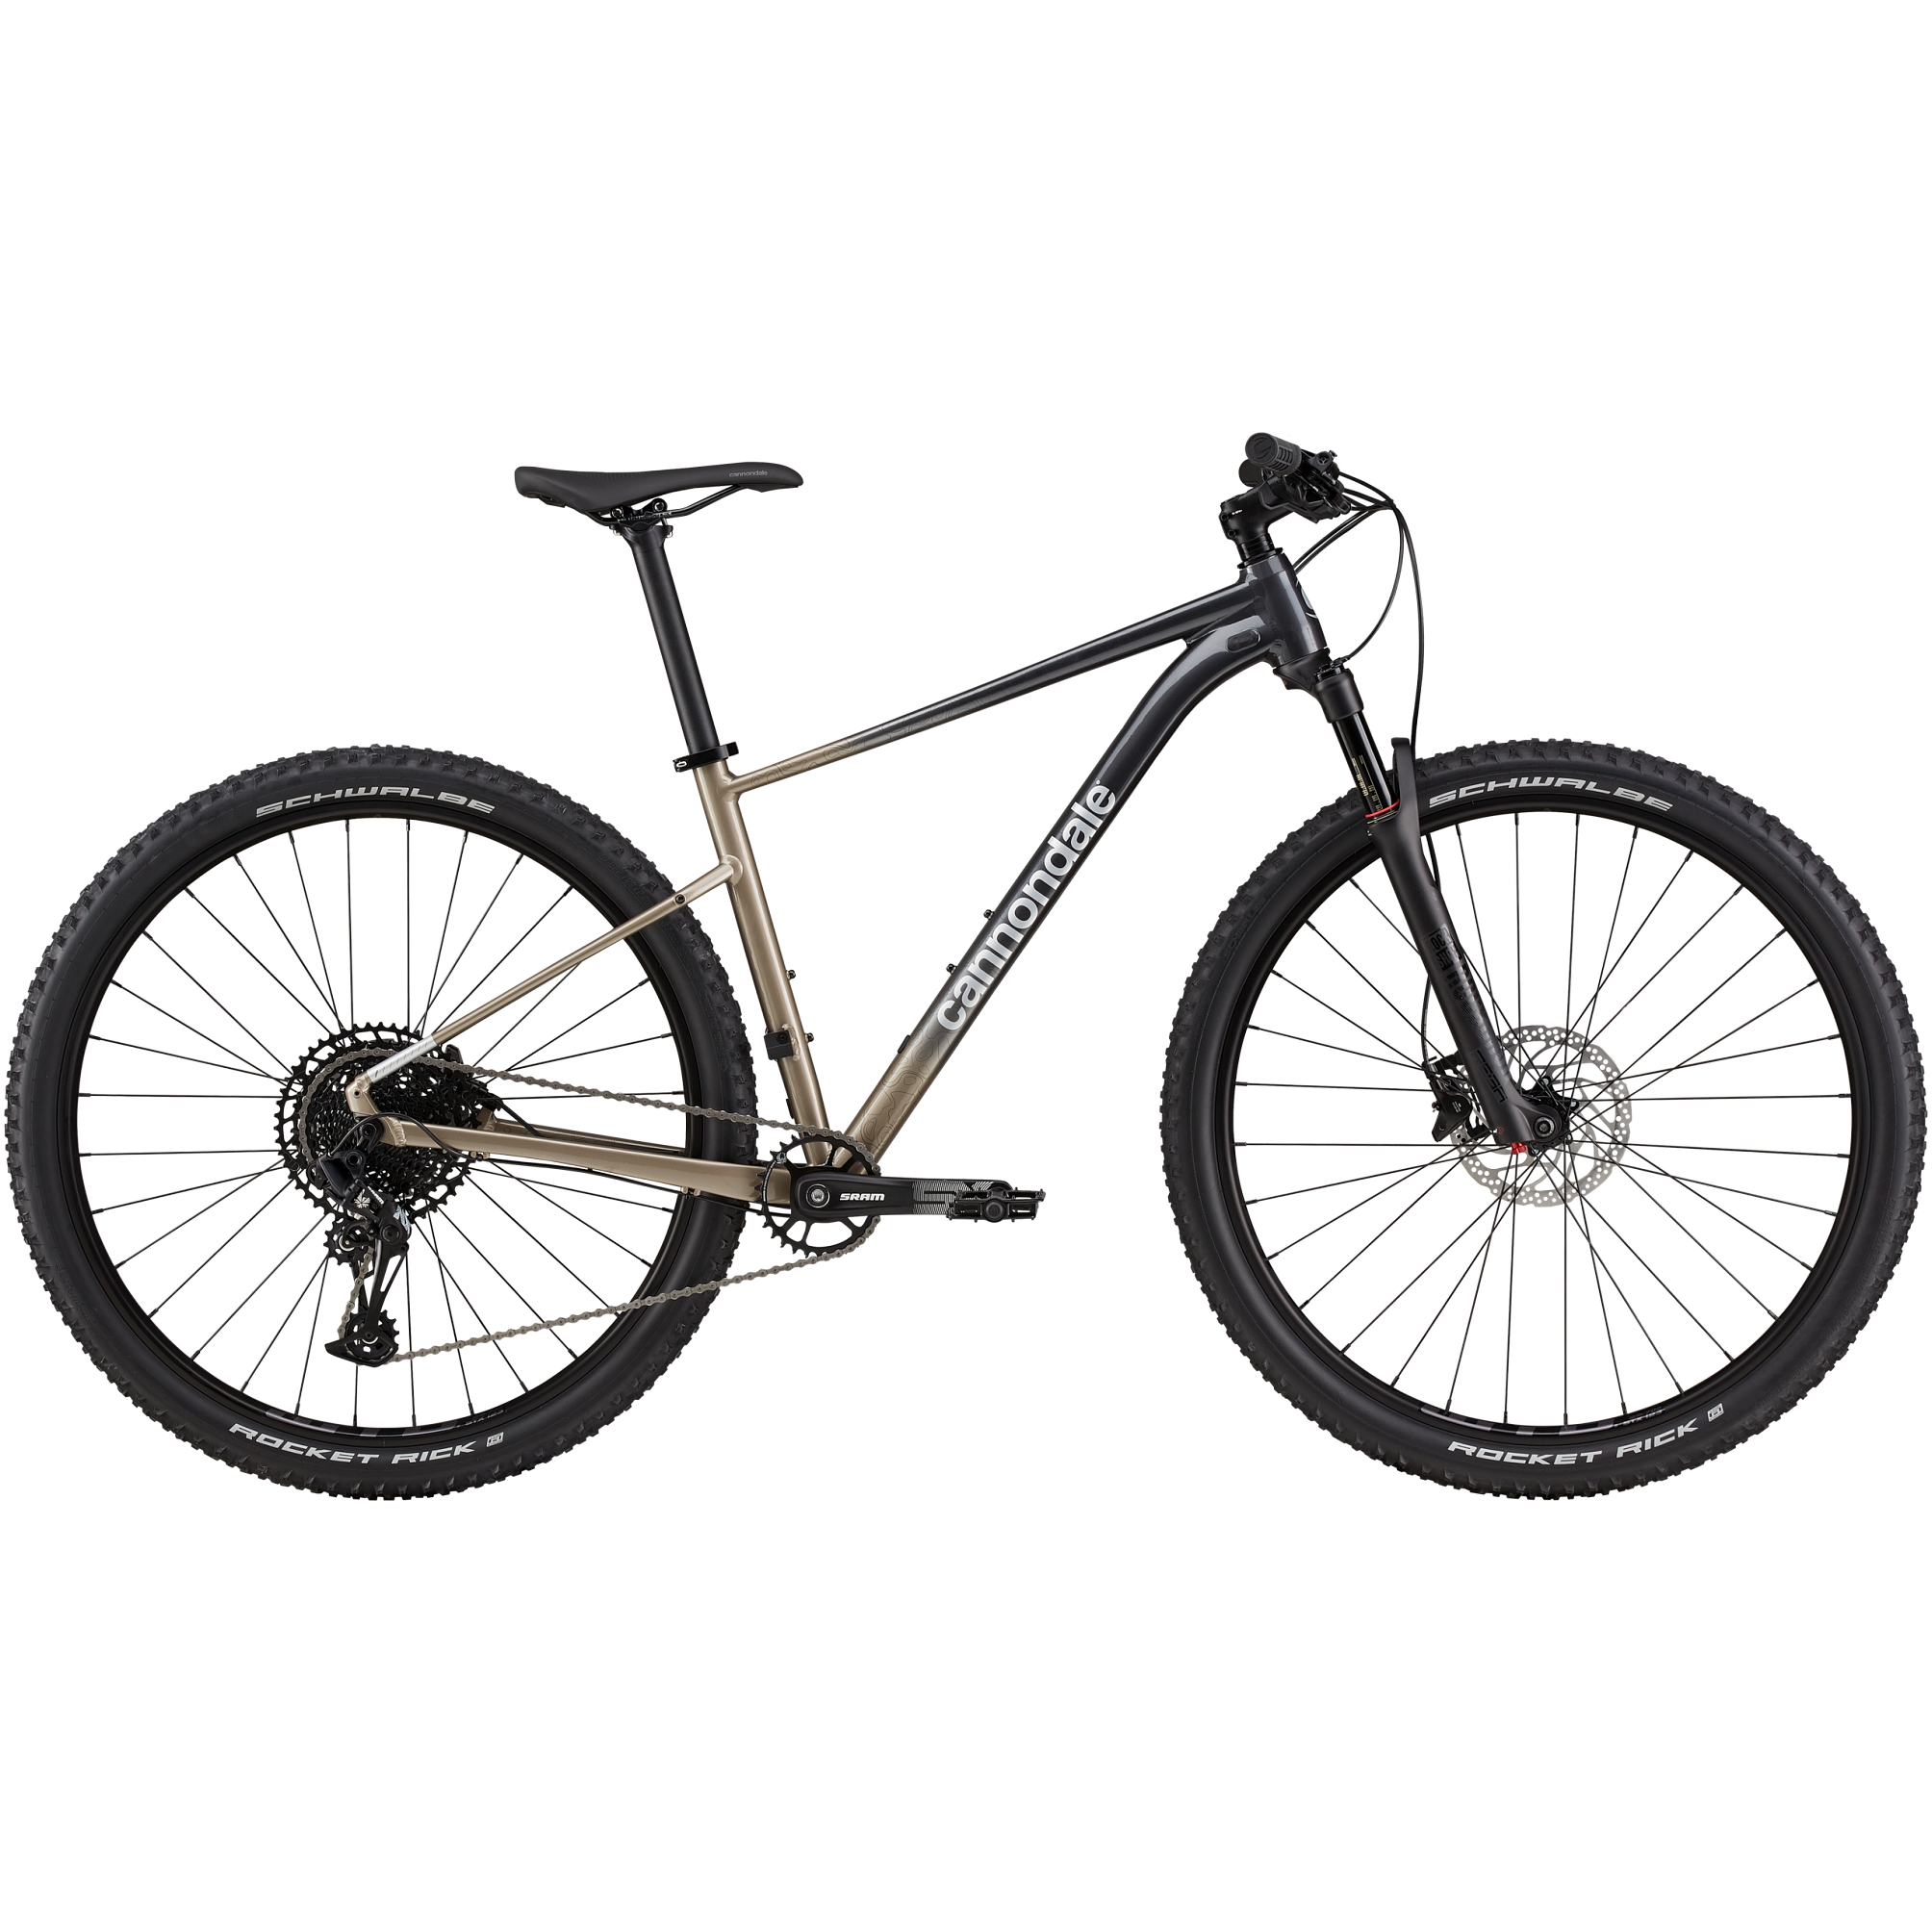 Cannondale Trail SL 1 Wheelsports